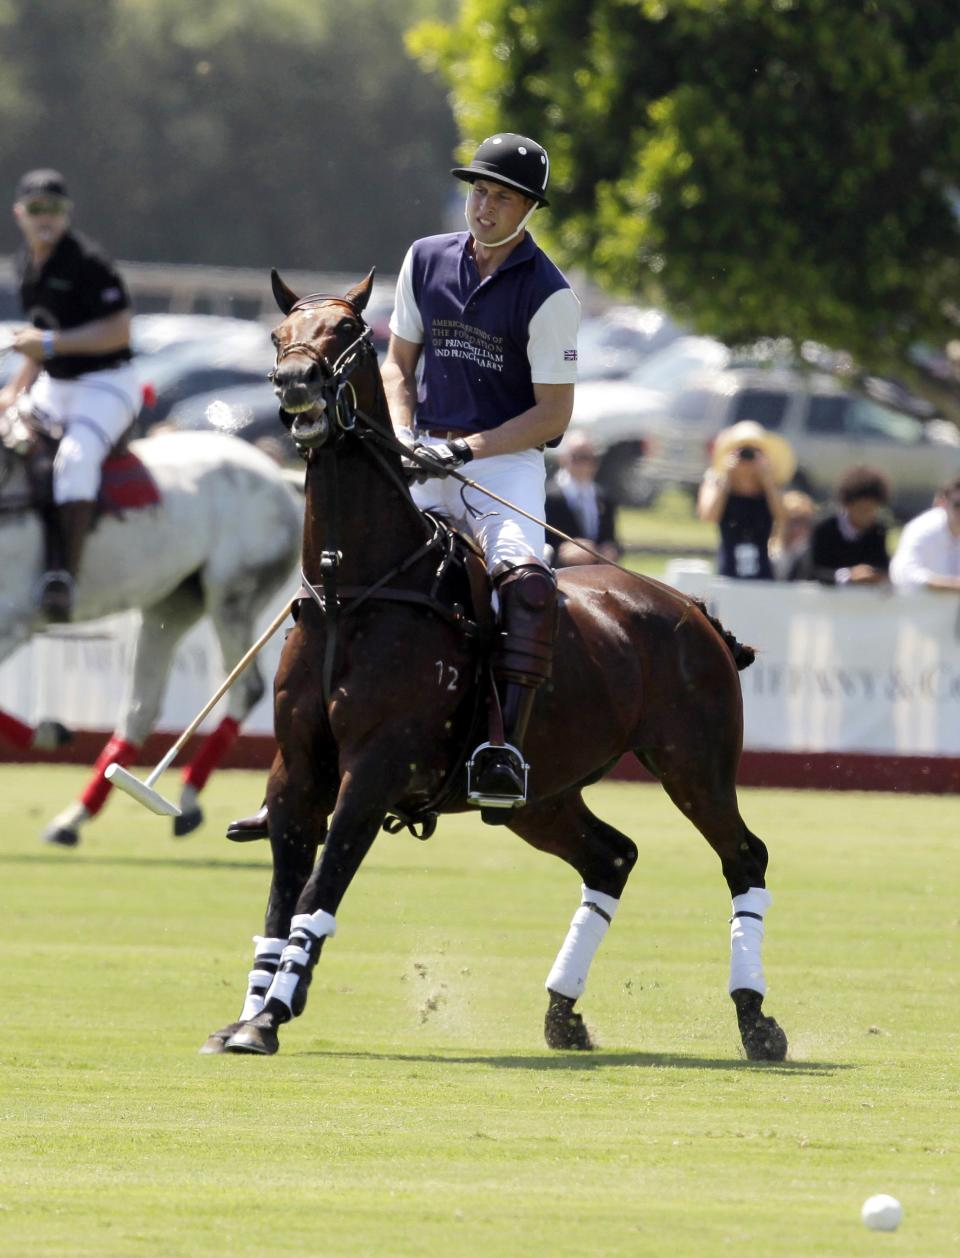 Prince William, Duke of Cambridge competes in the charity polo match at The Santa Barbara Polo & Racquet club on Saturday, July 9, 2011 in Carpinteria Calif.  The event is held in support of The American Friends of The Foundation of Prince William and Prince Harry. (AP Photo/Jae Hong)